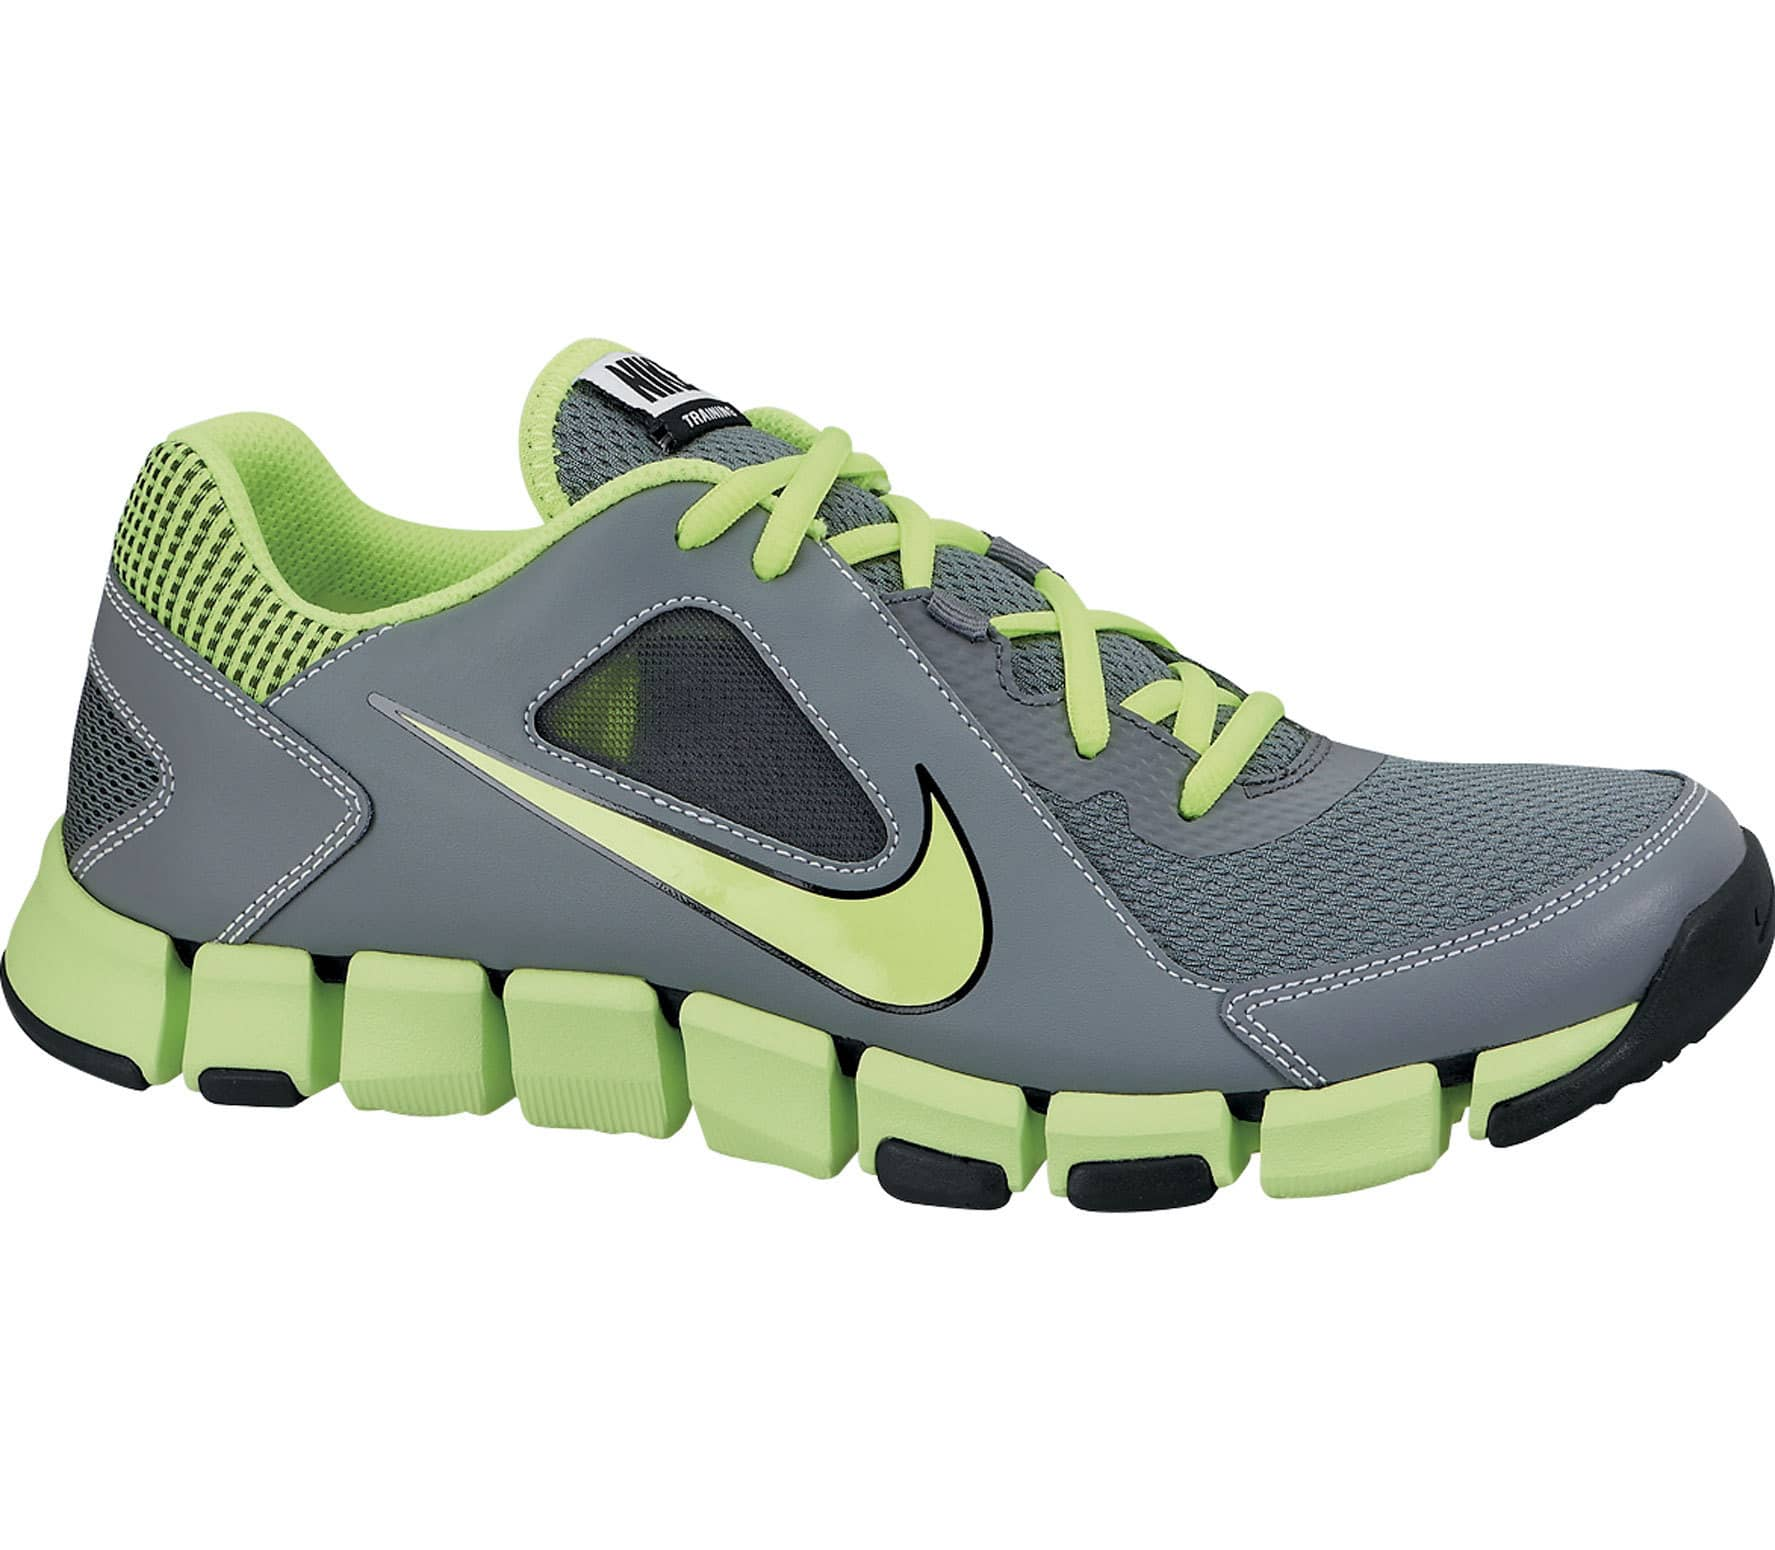 32328c604006 Nike - Flex Show TR 2 men s training shoes (grey green) - buy it at ...